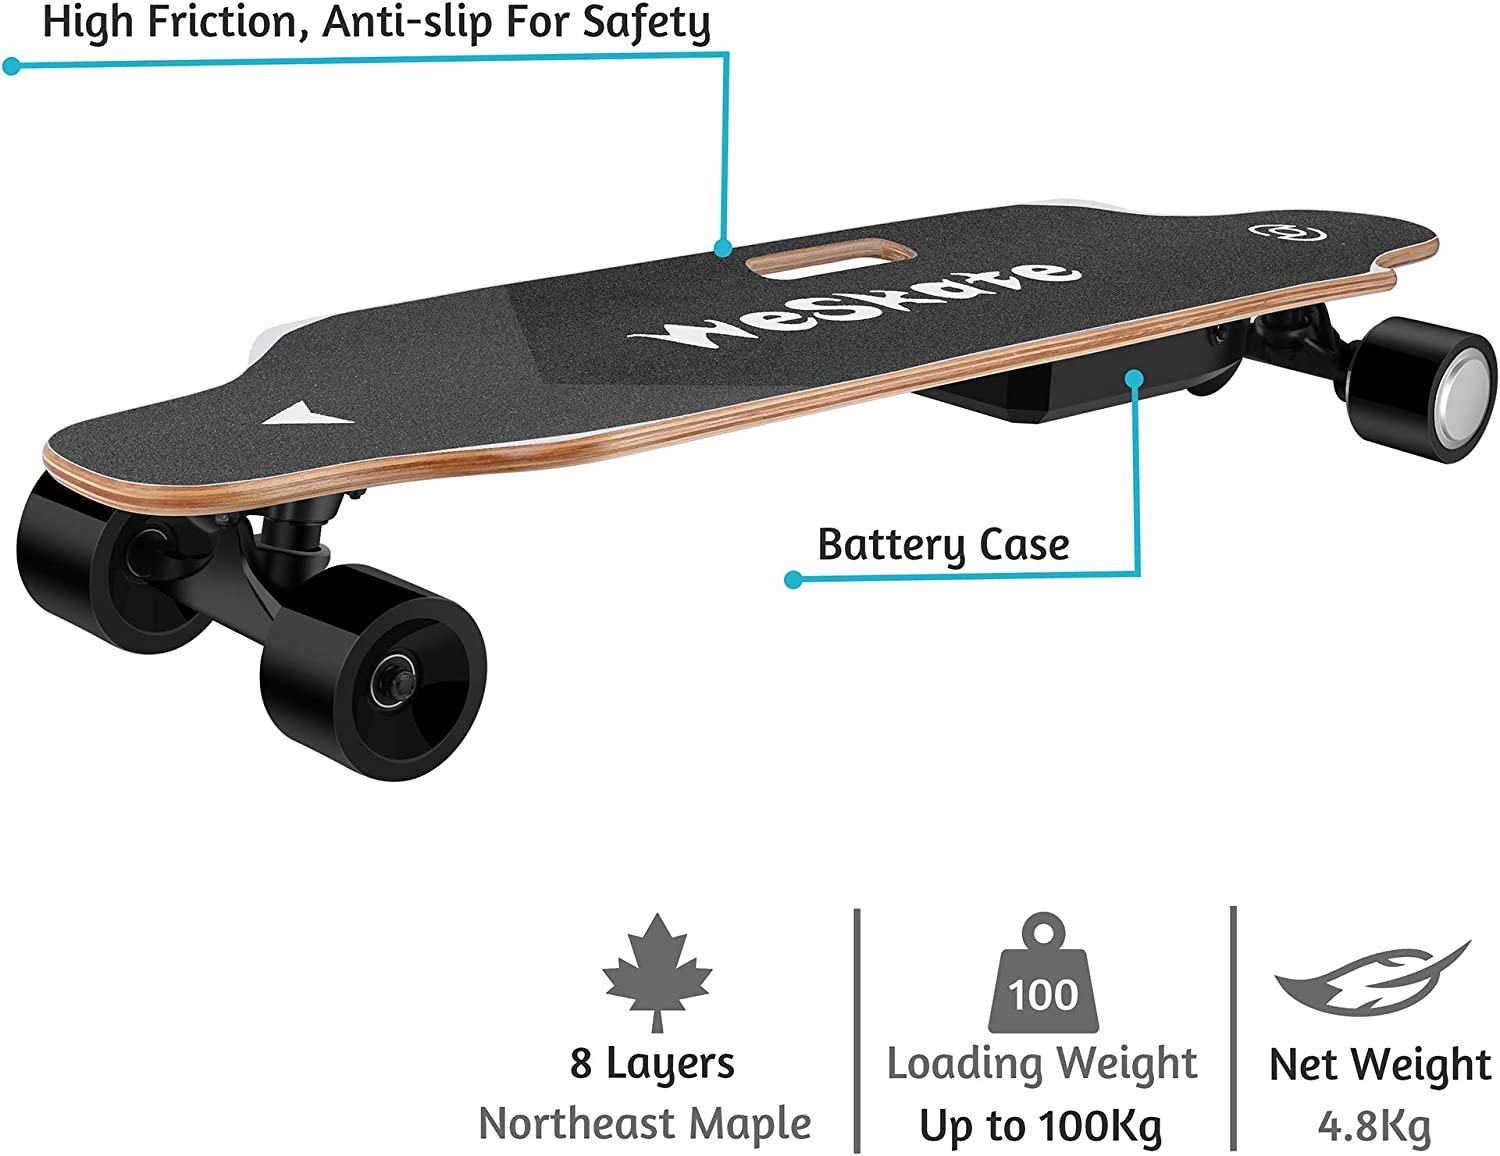 Free-Style and Downhill 8 Layers Maple Skateboard for Adults and Youths WeSkate Electric Longboard Wireless Remote Control Complete Skateboard Cruiser for Cruising Carving